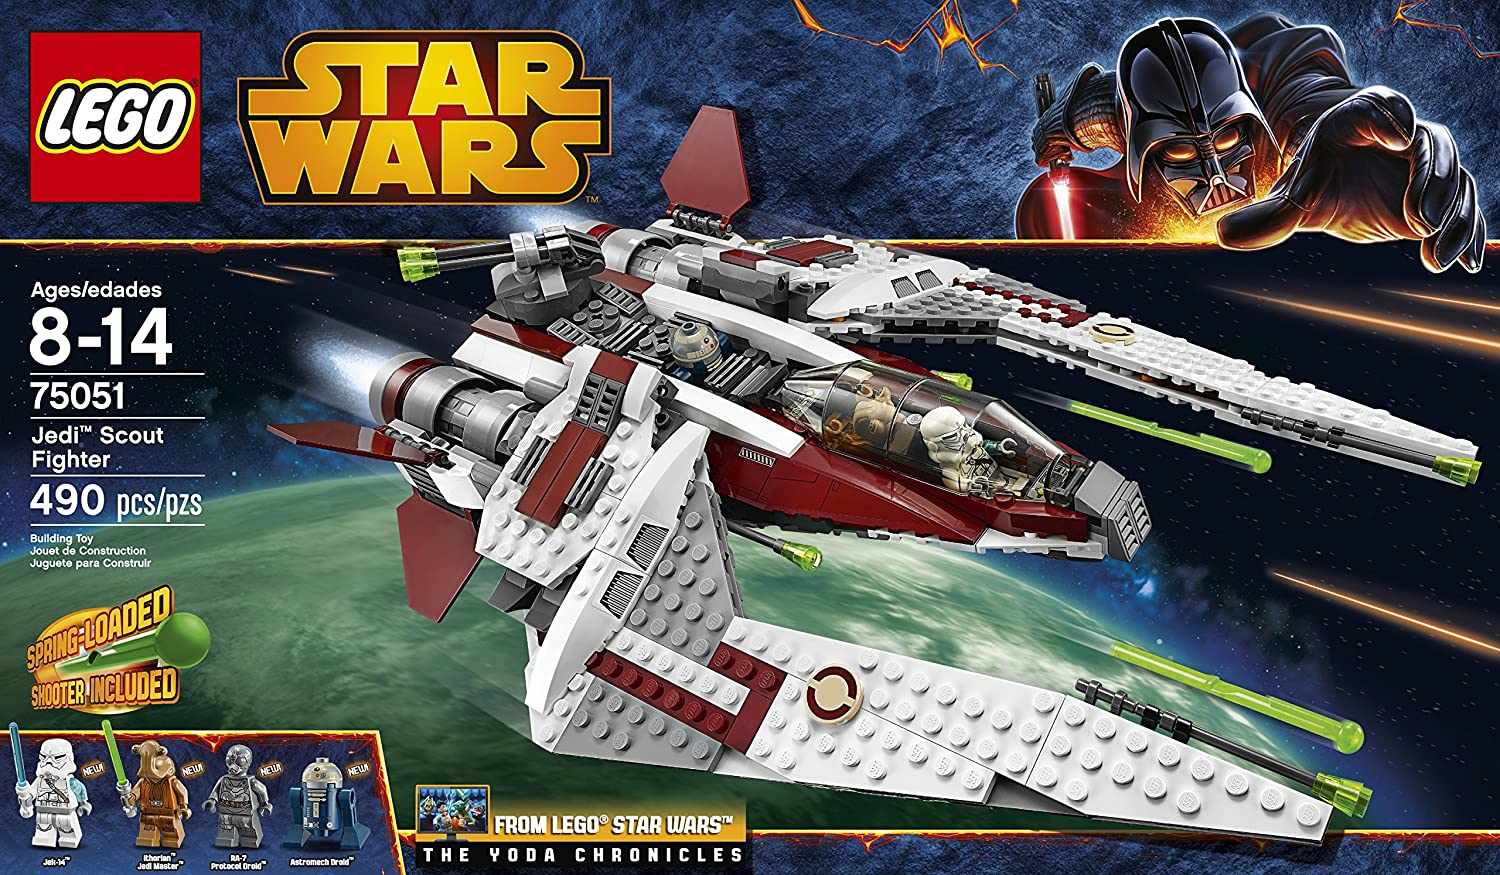 Star Wars Lego Toys : Lego star wars jedi scout fighter building toy new